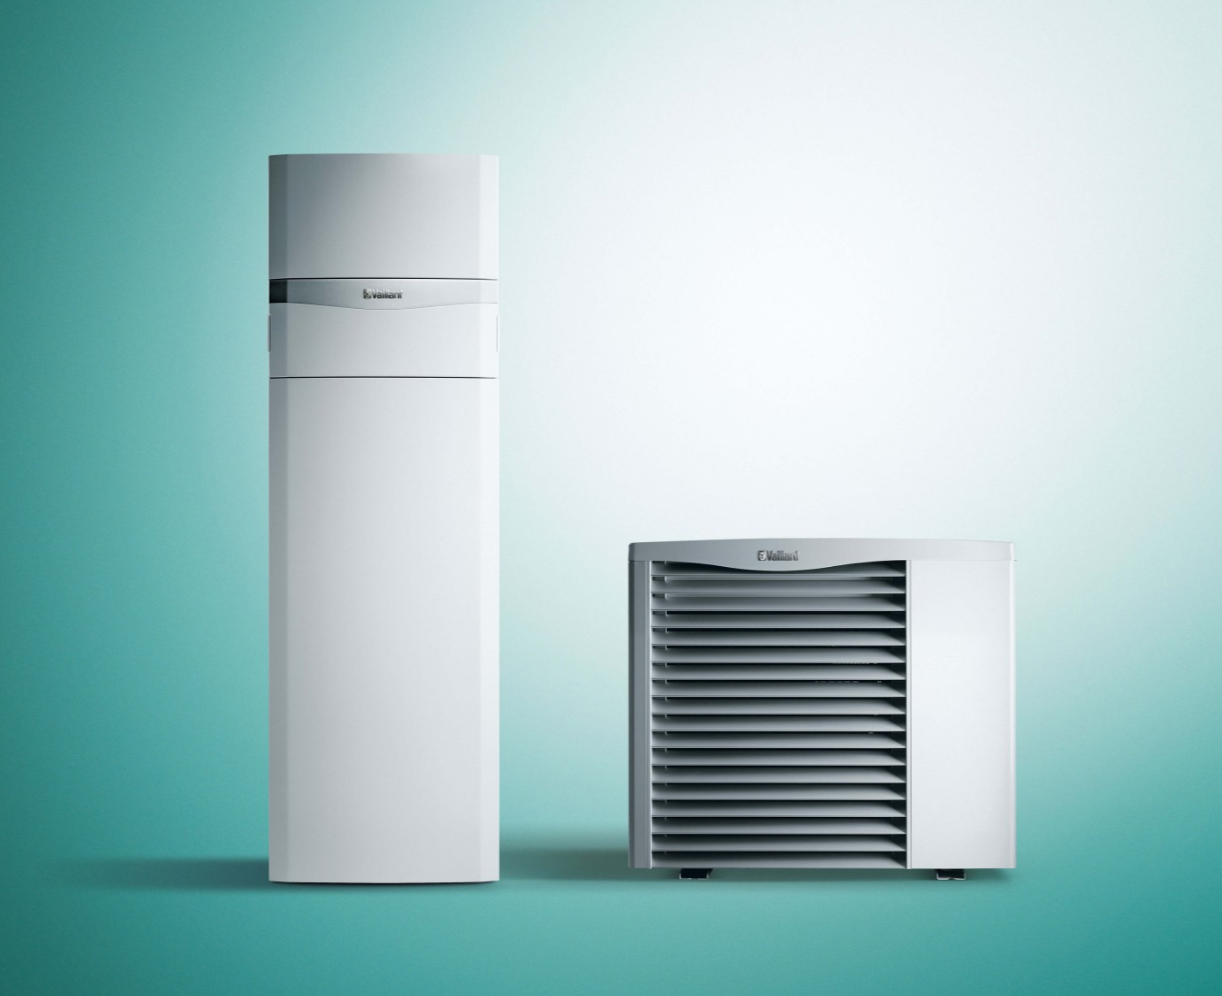 Vaillant geoTHERM warmtepomp